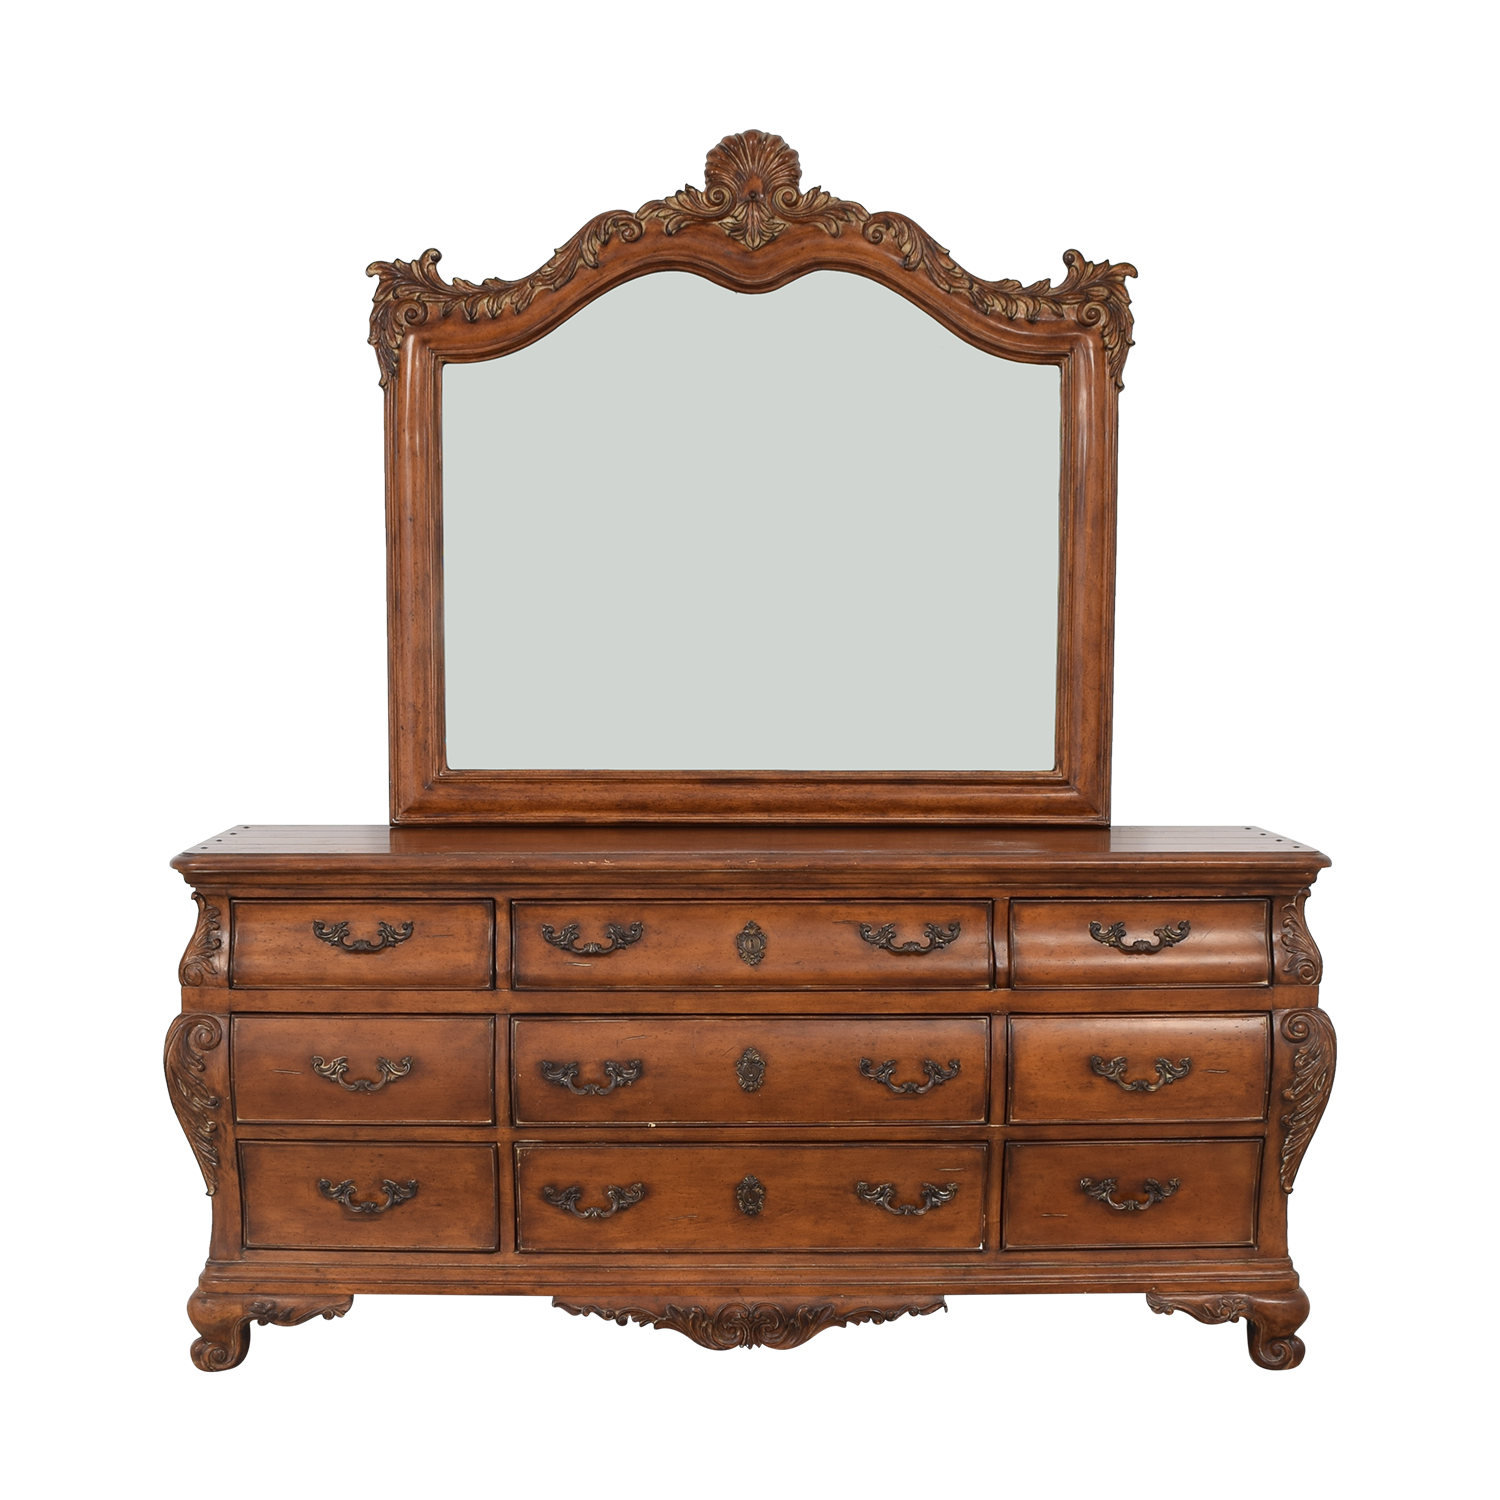 Thomasville Thomasville Chateau Provence Bombe Dresser and Landscape Mirror coupon